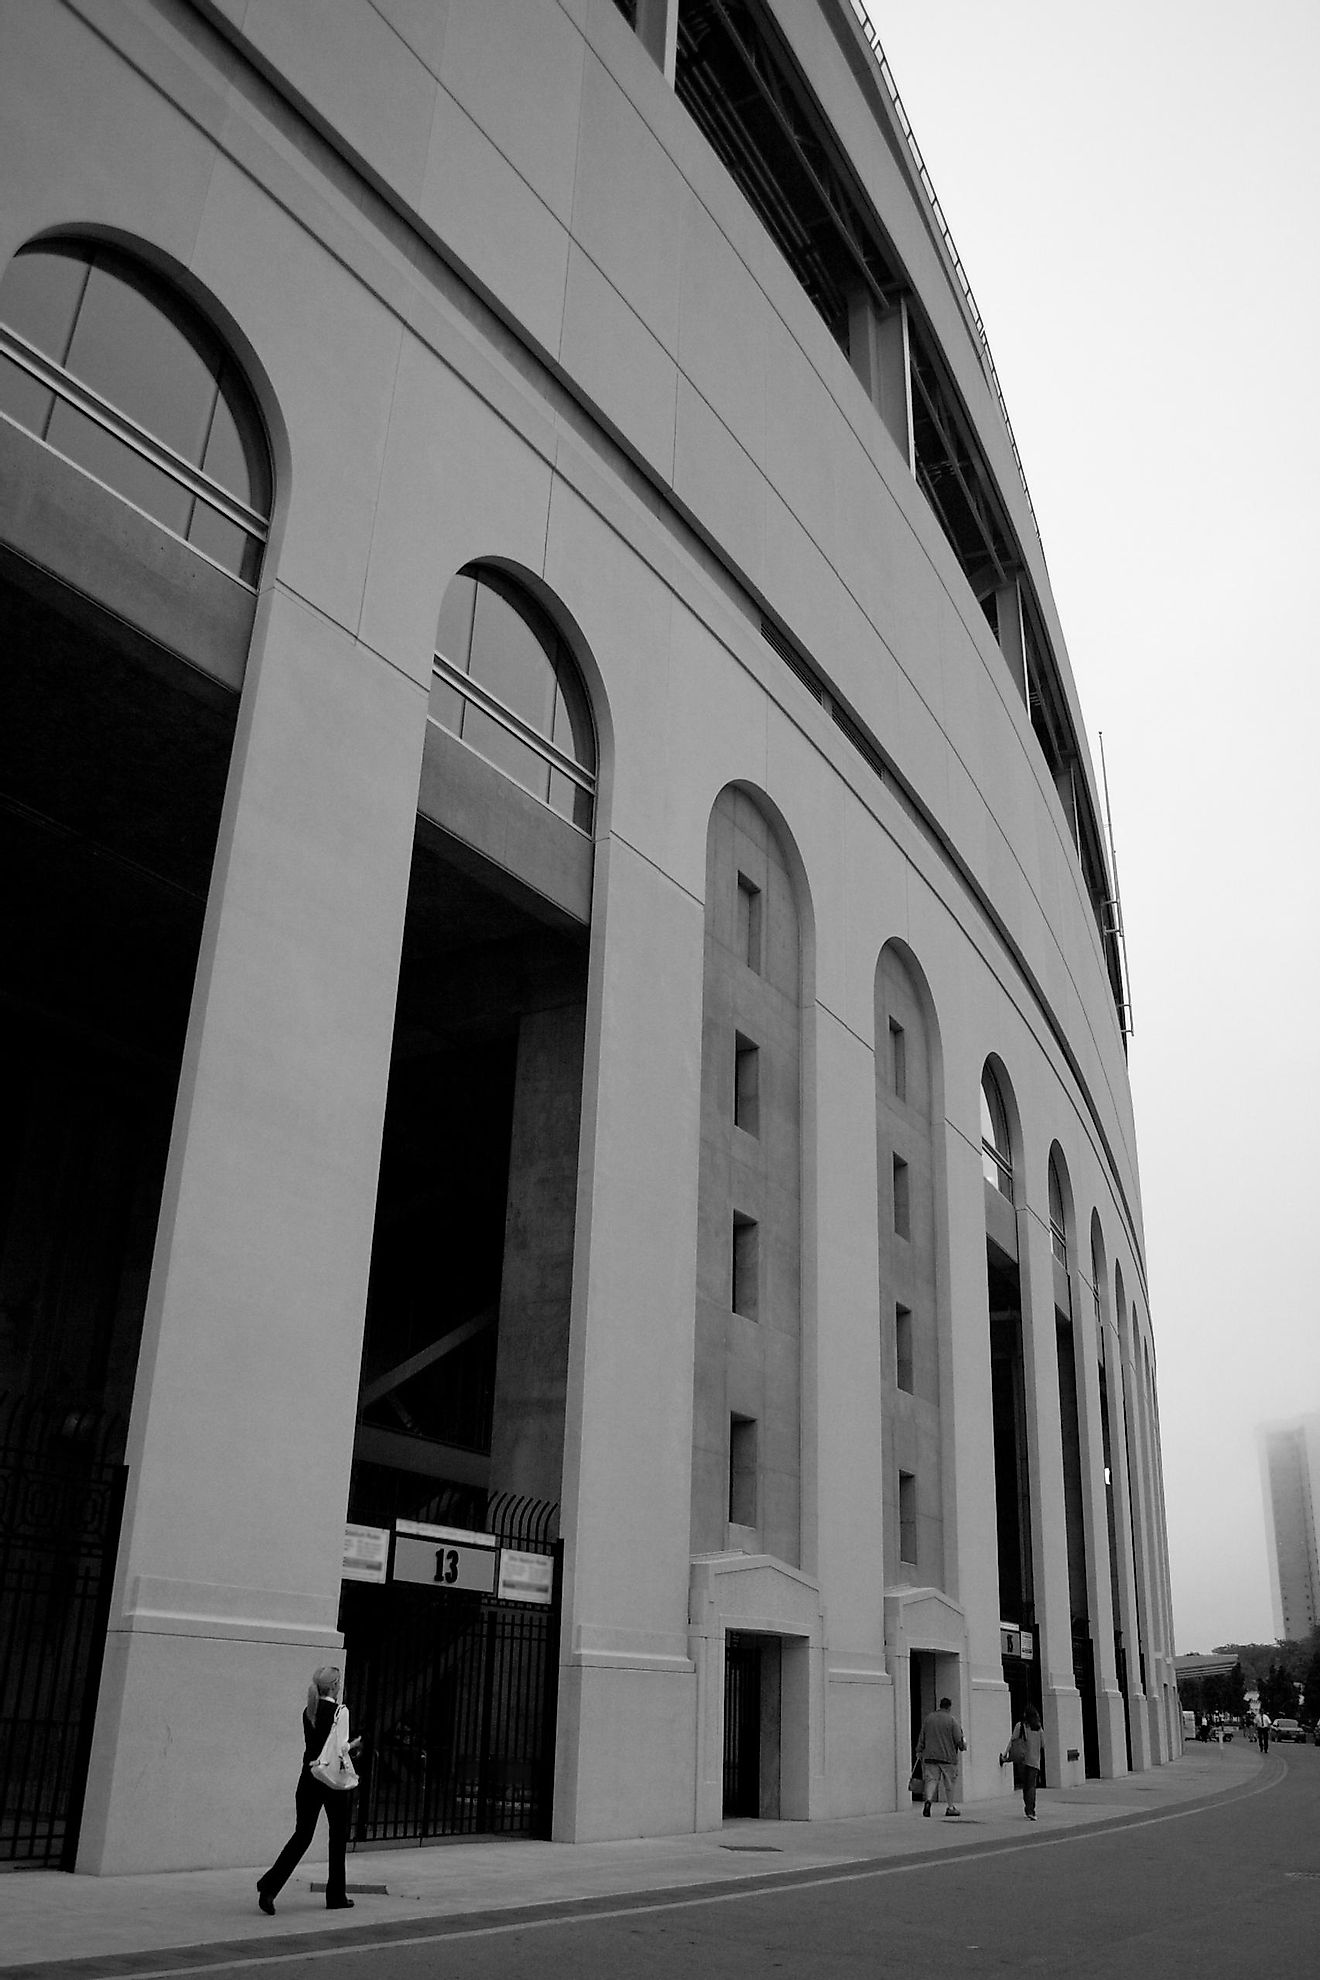 The large scale of Columbus's massive Ohio Stadium is seen in this photo.